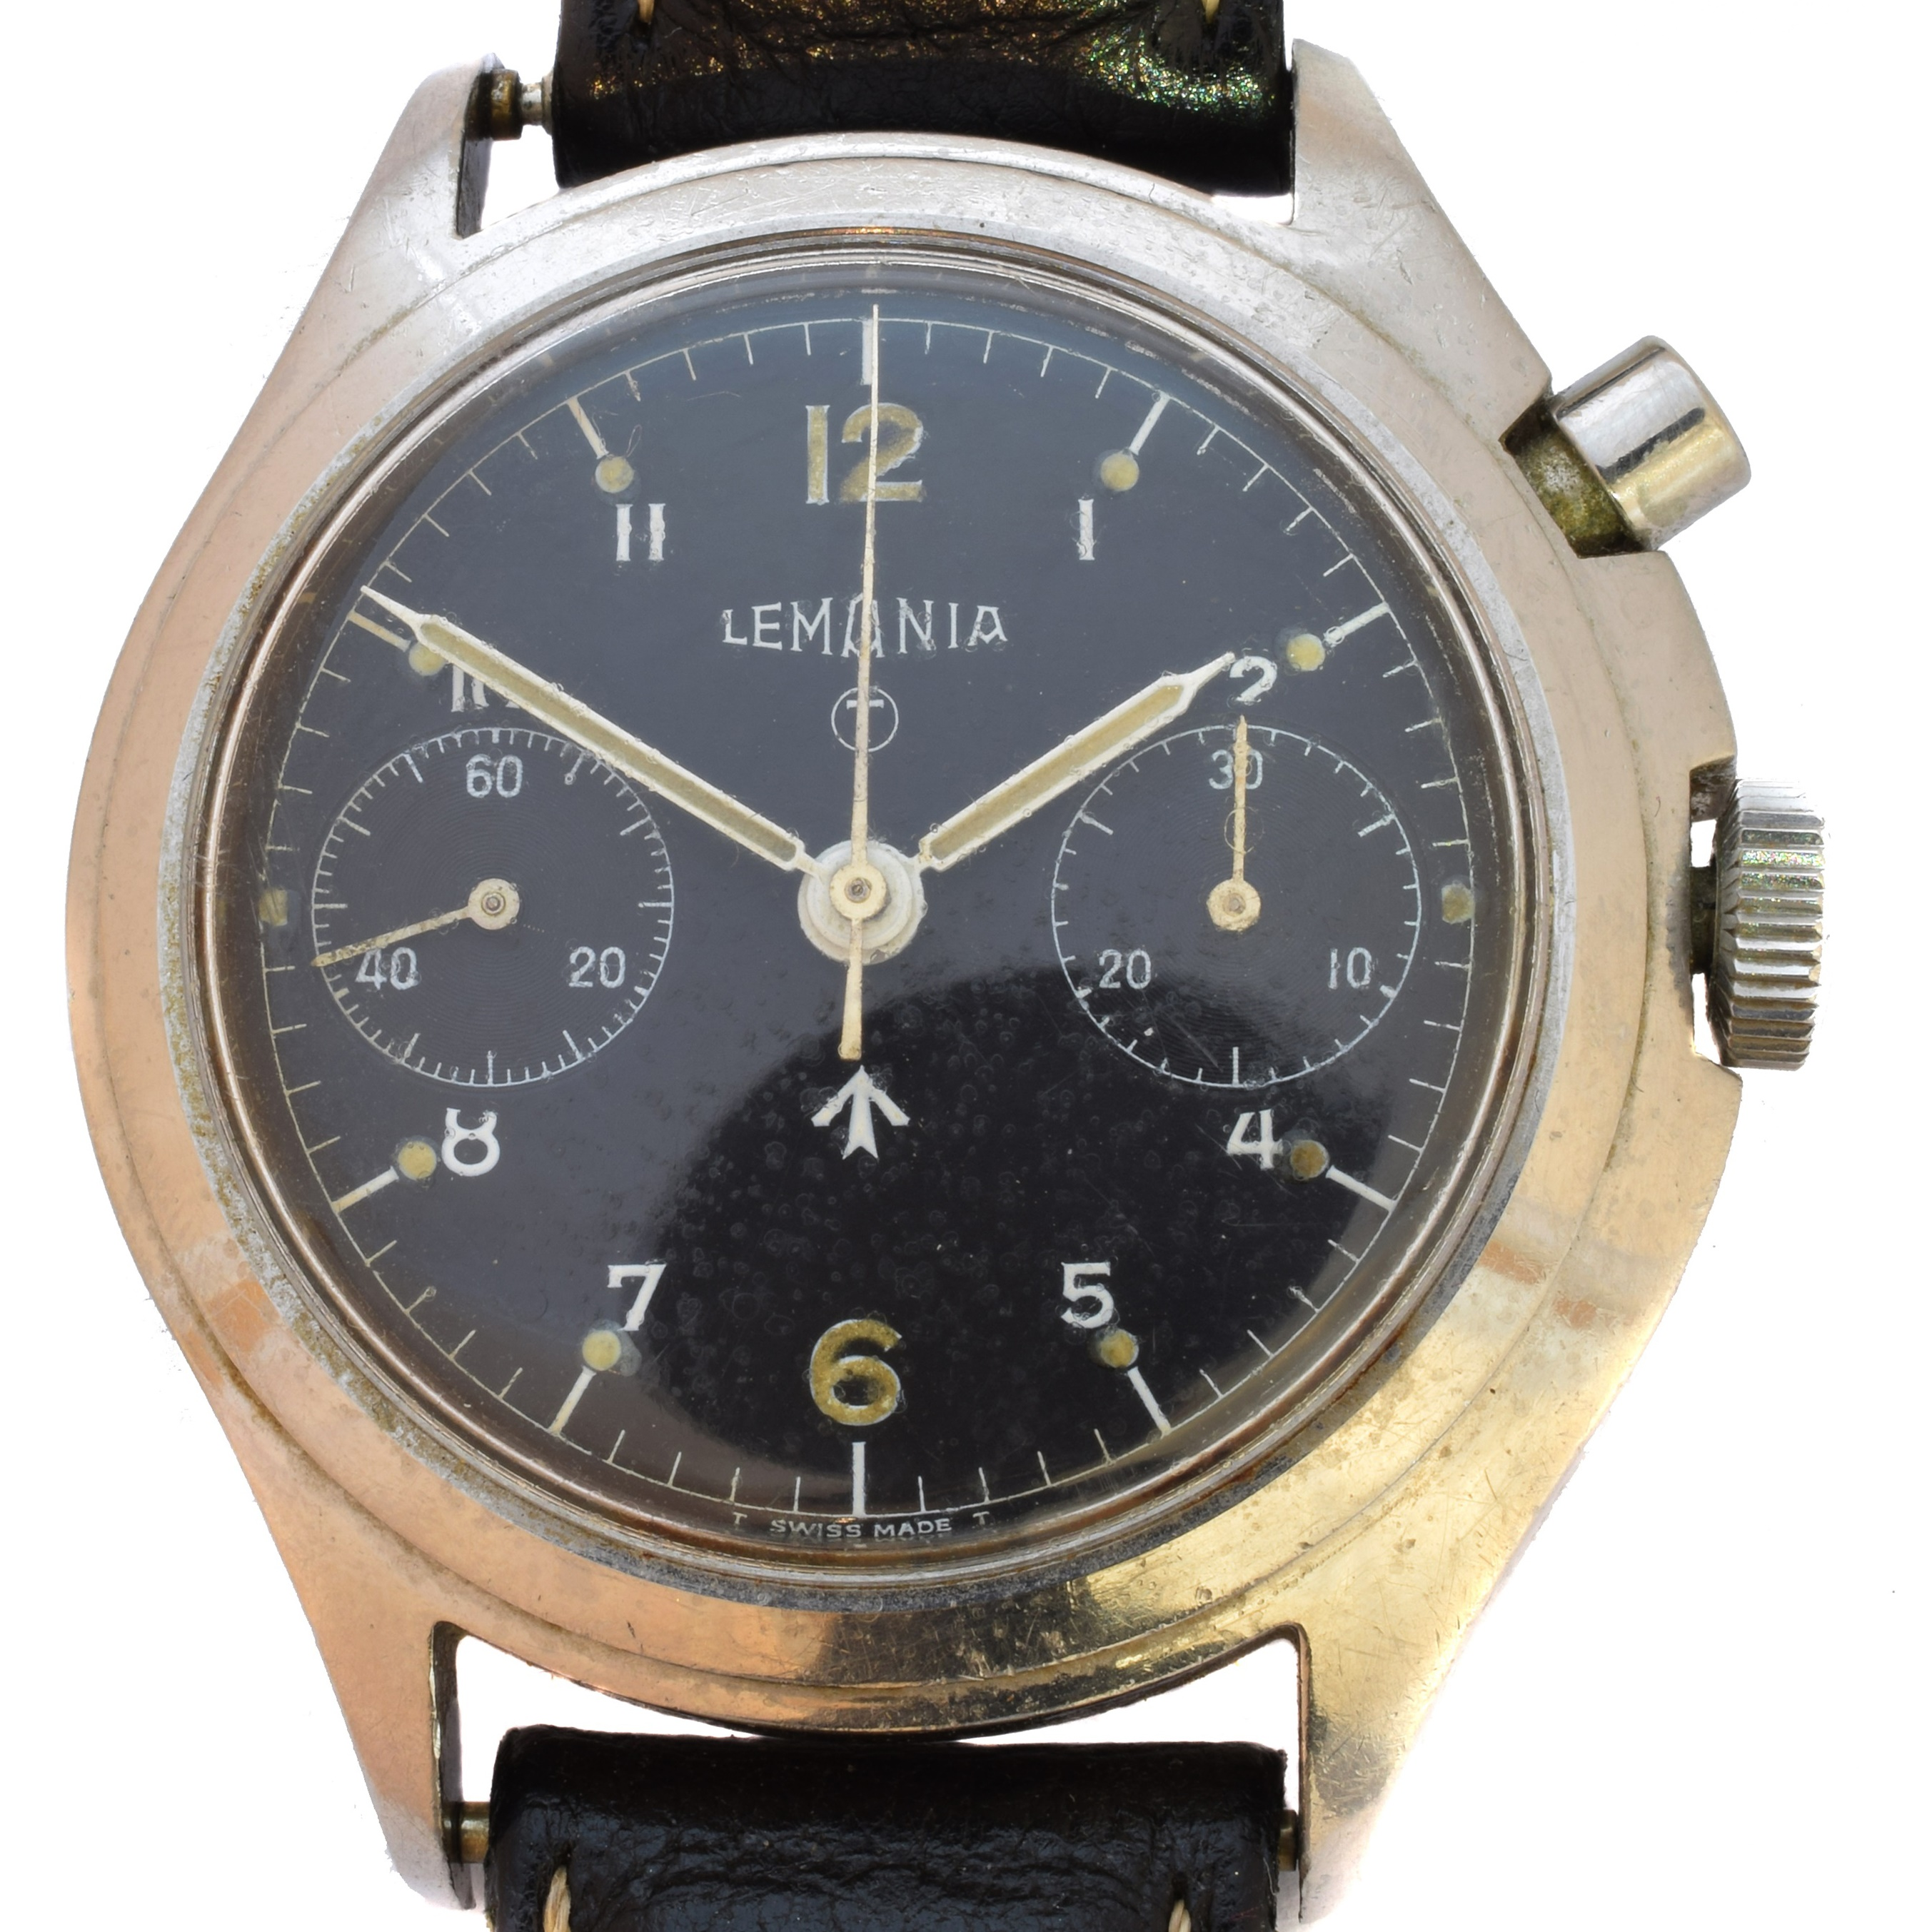 A rare 1960s Lemania stainless steel military single button chronograph wristwatch, the signed circular black dial with military arrow, white Arabic hour markers, luminescent tritium 12, 6 and dot hour markers, double register recording minutes & continuous seconds, within an asymmetric Acier steel case, 2220 calibre 35-67, 17 jewel movement signed and numbered Lemania Watch Co 1975035, case back numbered AF 9615, with later black leather strap, case diameter 40mm.